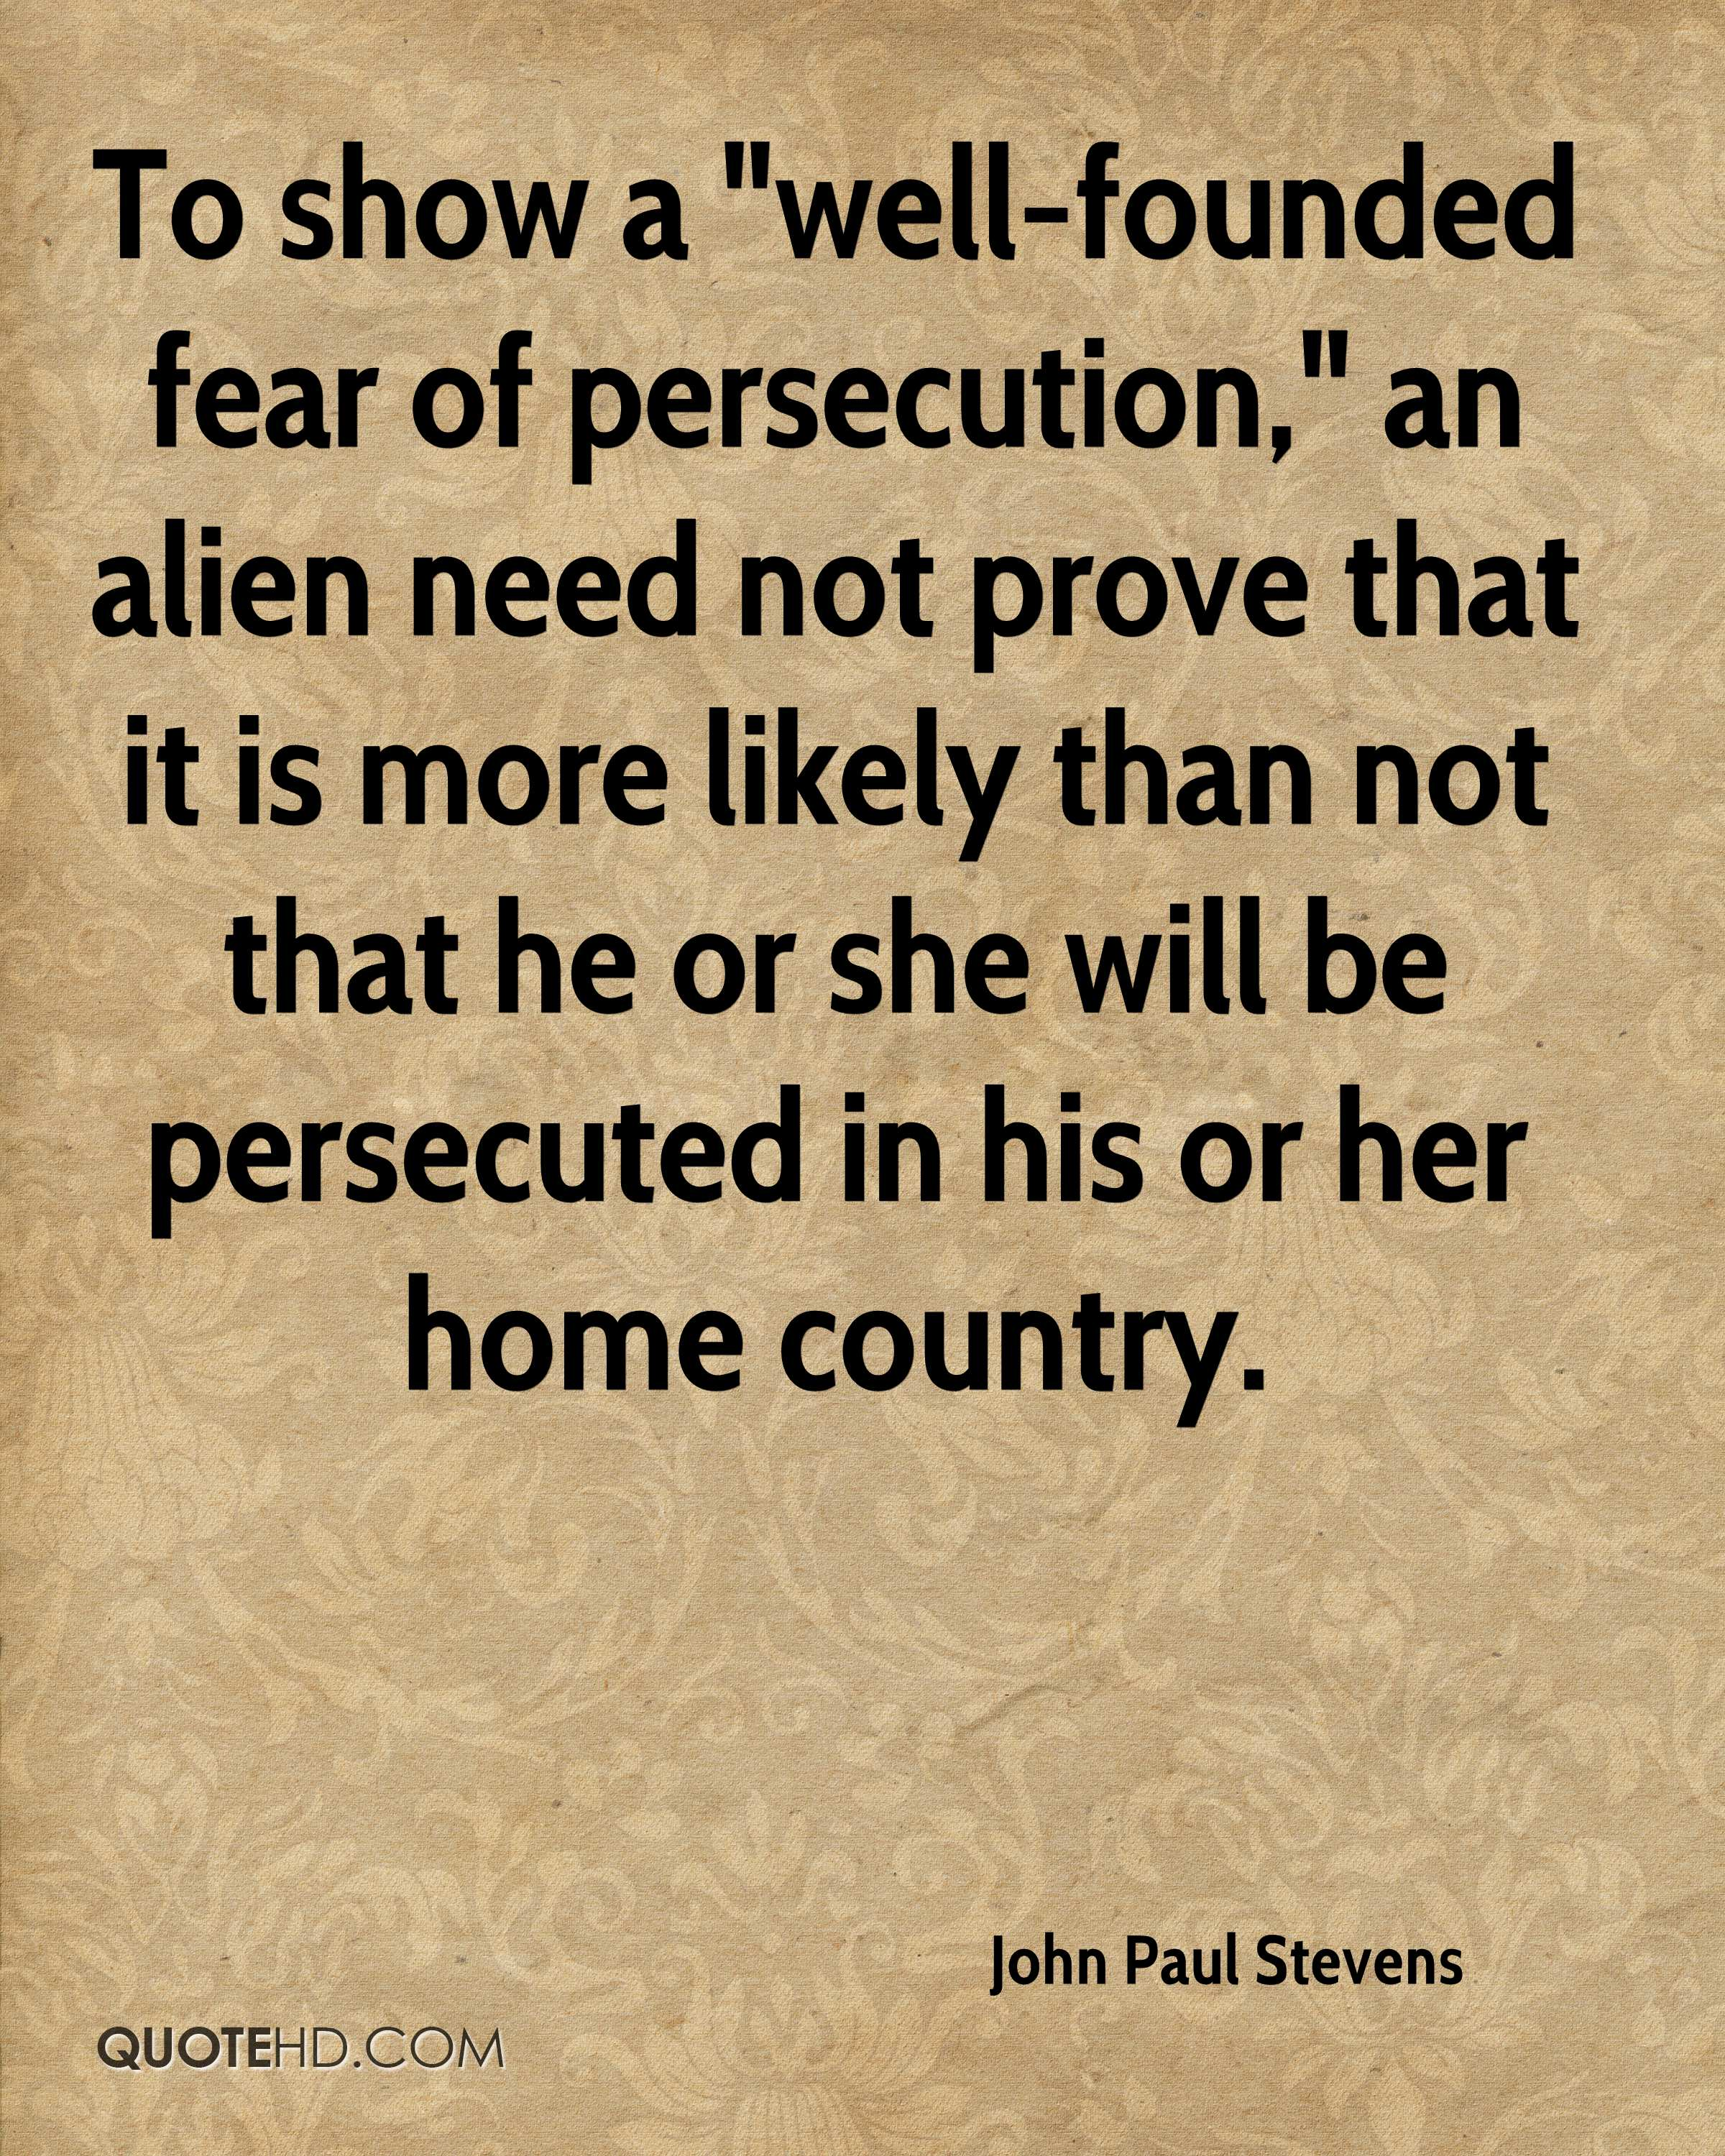 """To show a """"well-founded fear of persecution,"""" an alien need not prove that it is more likely than not that he or she will be persecuted in his or her home country."""